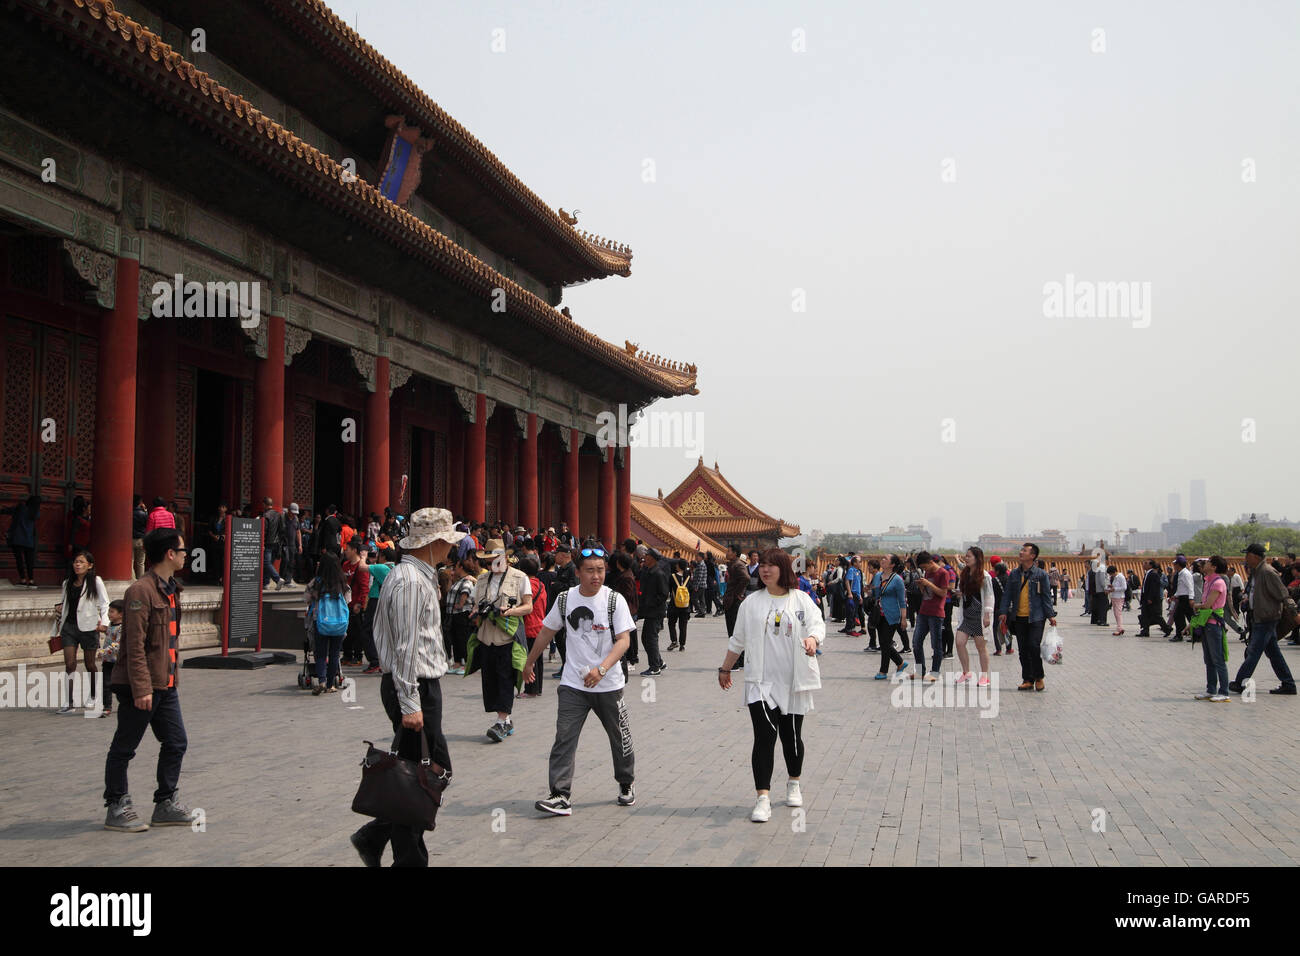 Chinese people and foreigners, tourists walk by the Hall of Preserving Harmony in the Forbidden City. Beijing, China. - Stock Image